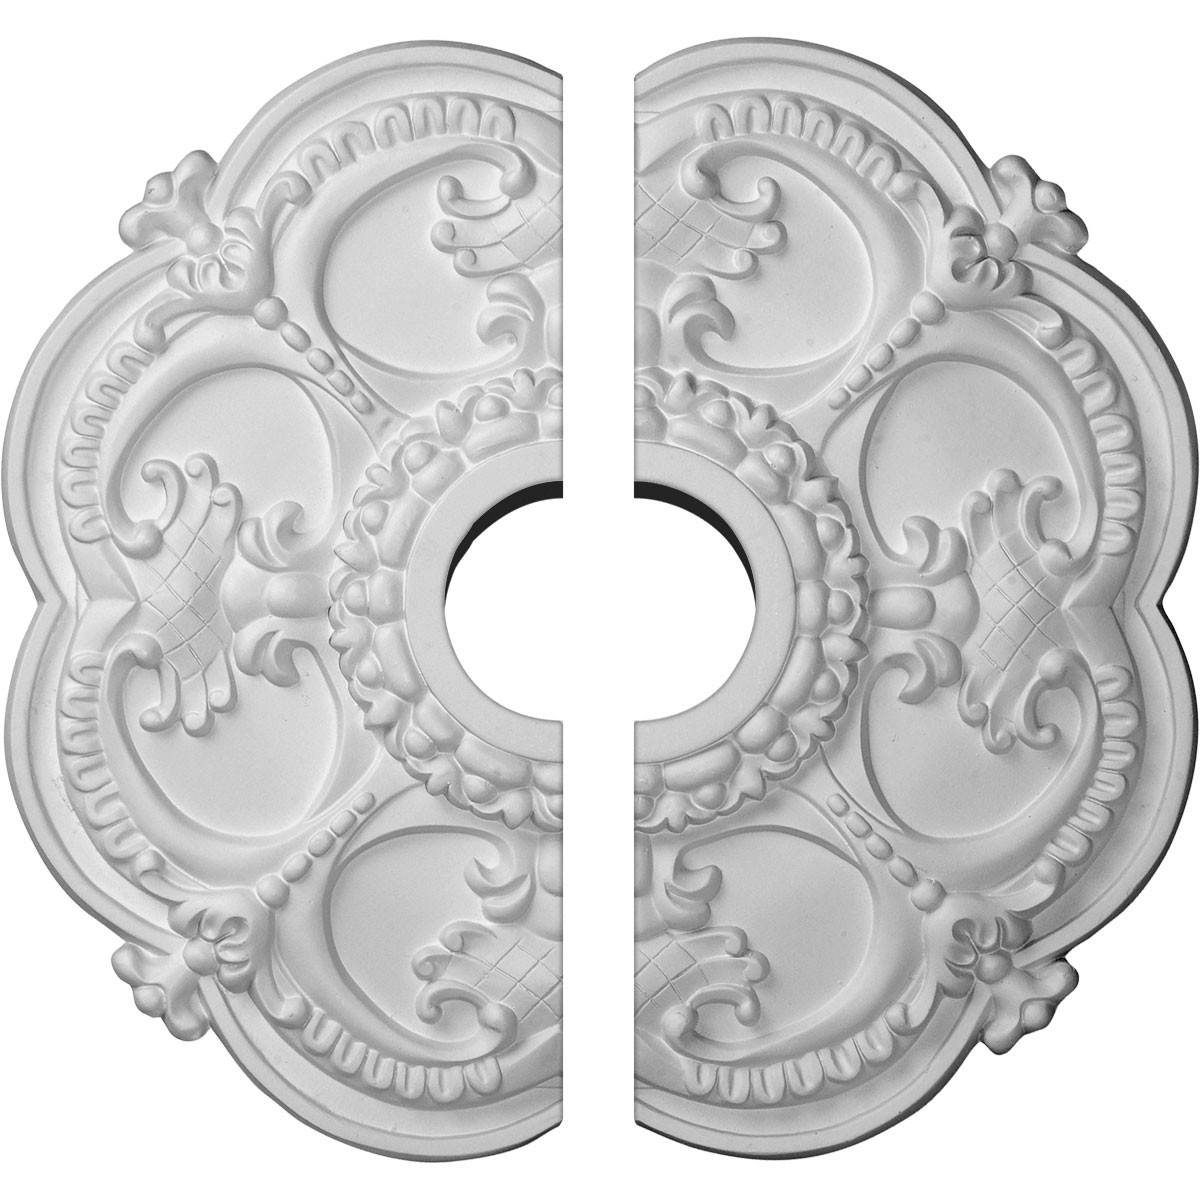 "EM-CM17RO2 - 18""OD x 3 1/2""ID x 1 1/2""P Rotherham Ceiling Medallion, Two Piece (Fits Canopies up to 3 1/2"")"